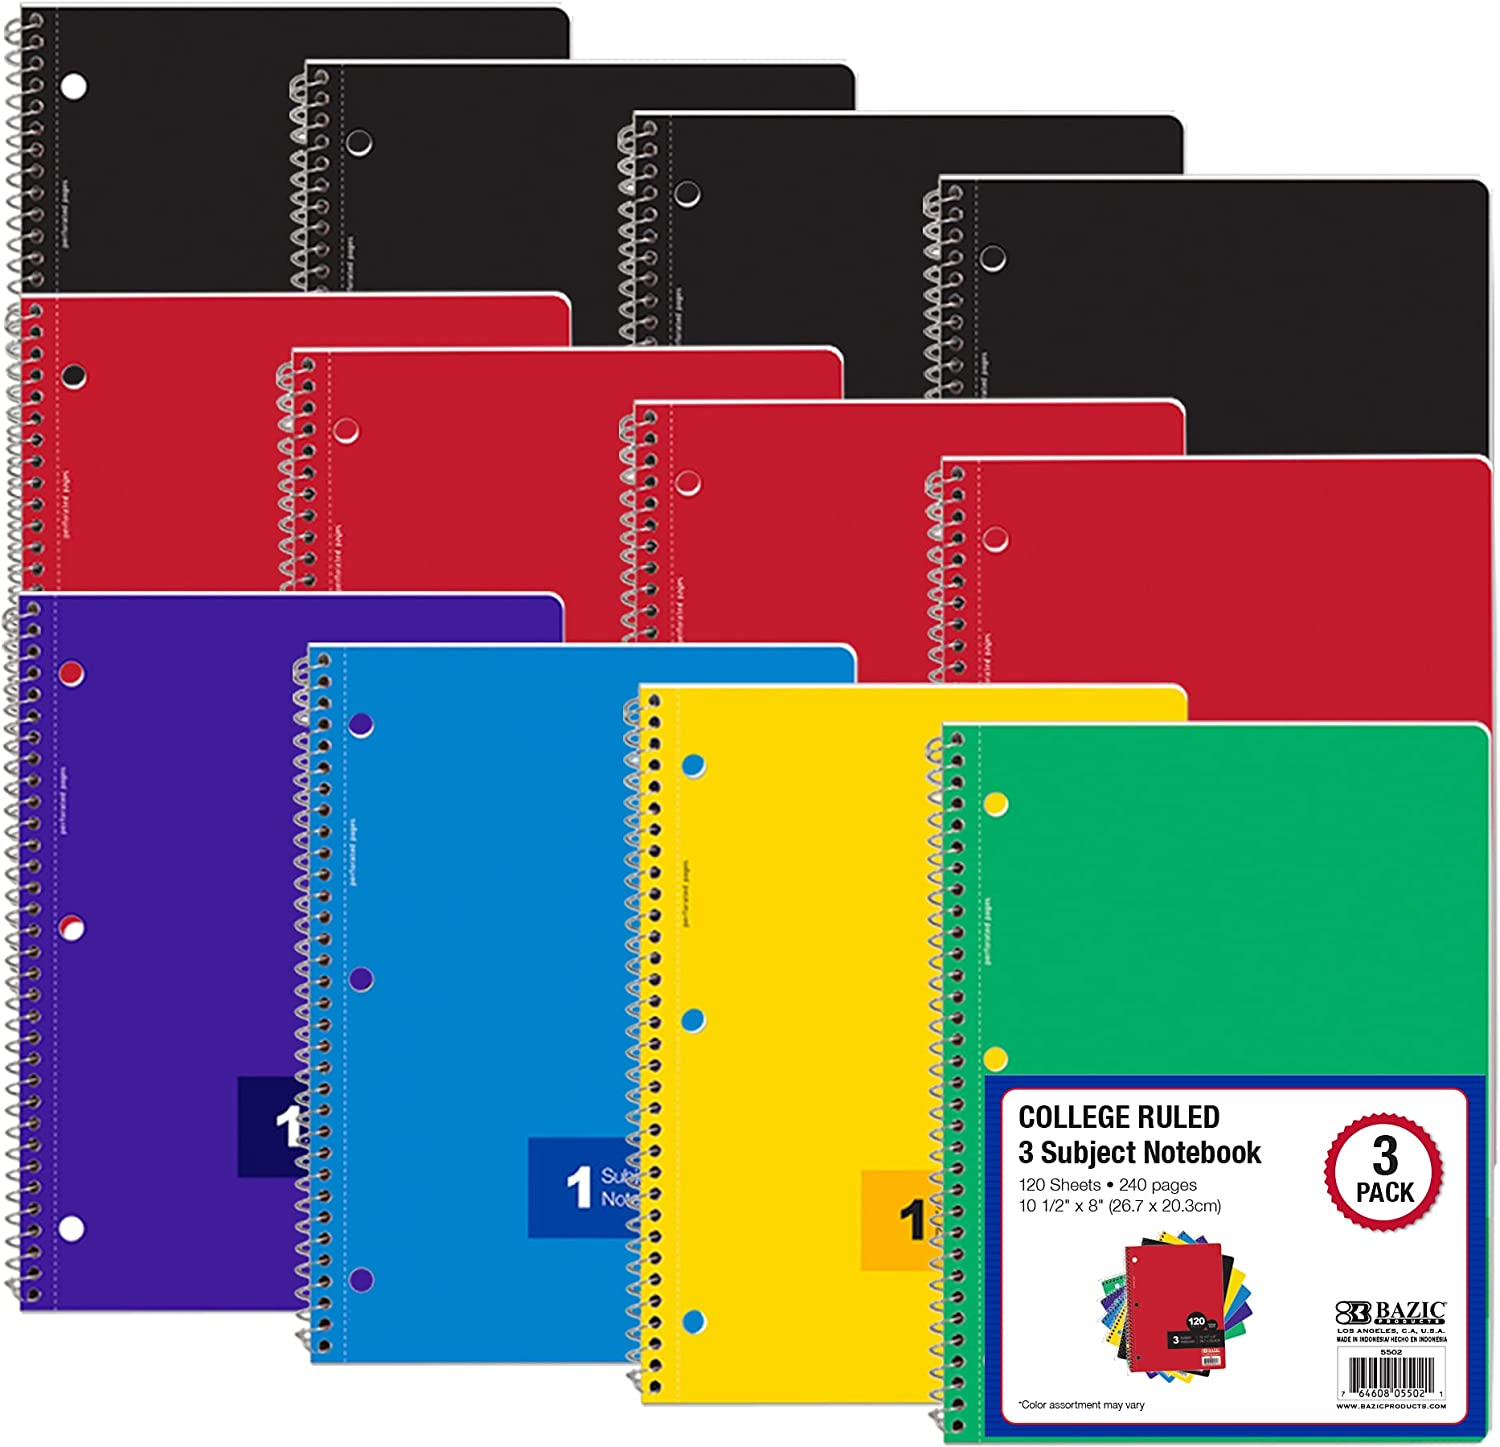 BAZIC Notebook Fixed price supreme for sale College Ruled 3 Subject Spiral 120 Sheets